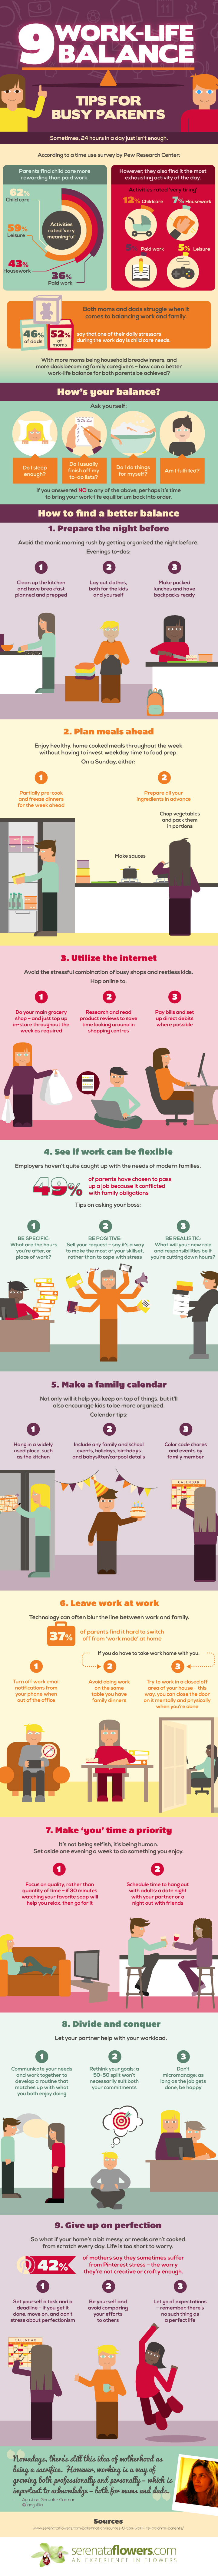 1427122291_work_life_balance_tips_busy_working_parents_infographic.jpg